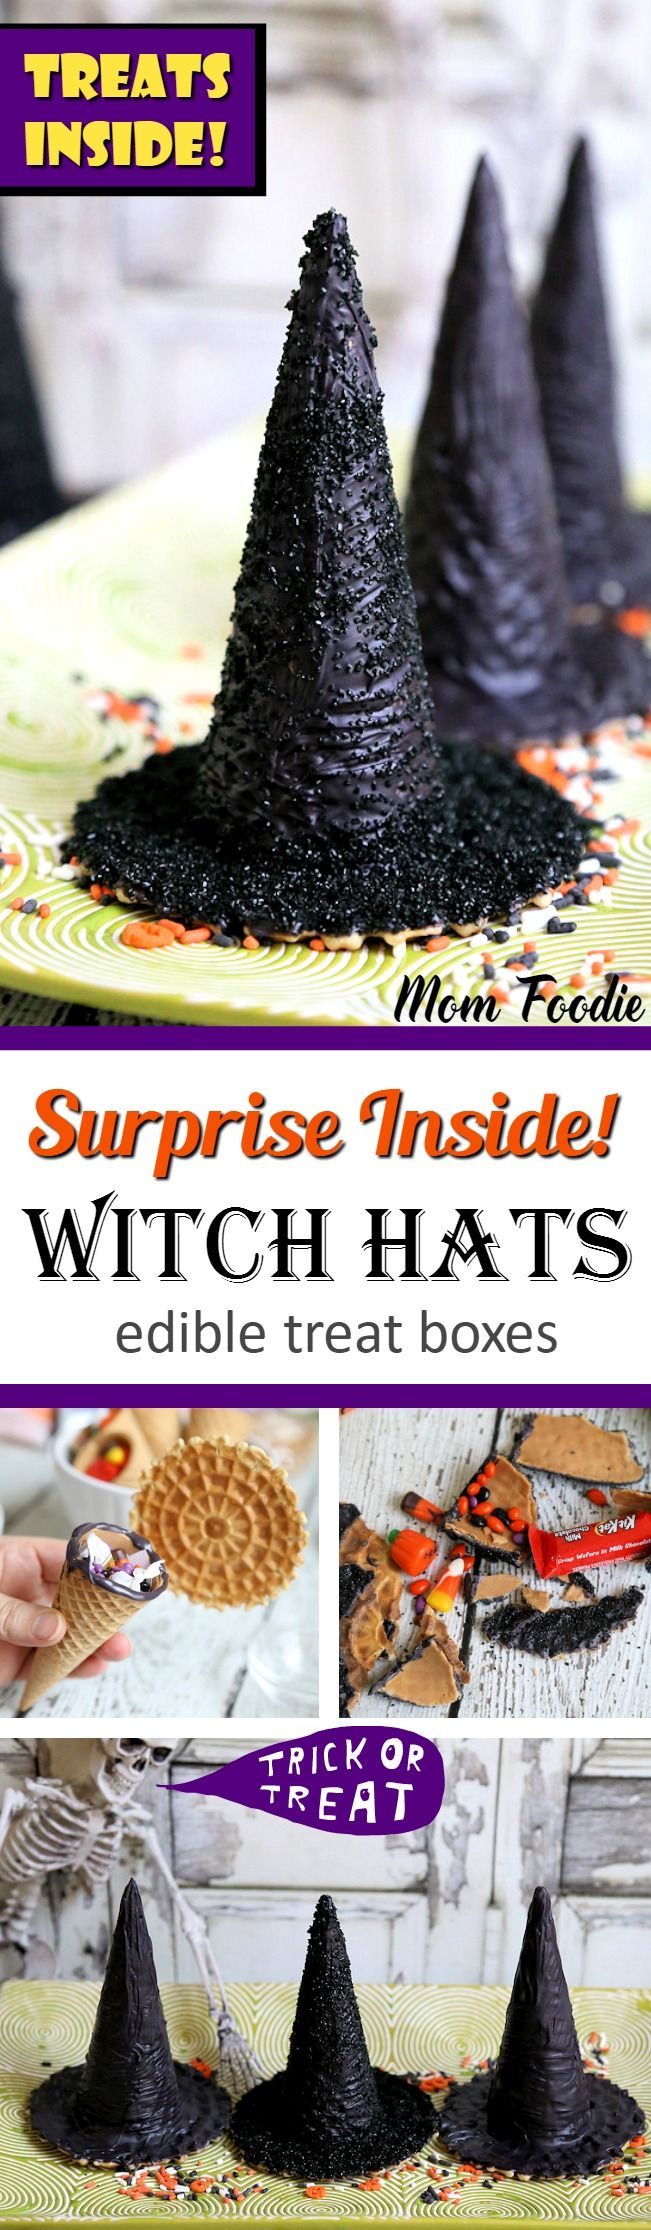 Surprise Inside Halloween Witch Hats : Edible Treat Boxes   Recipe ...